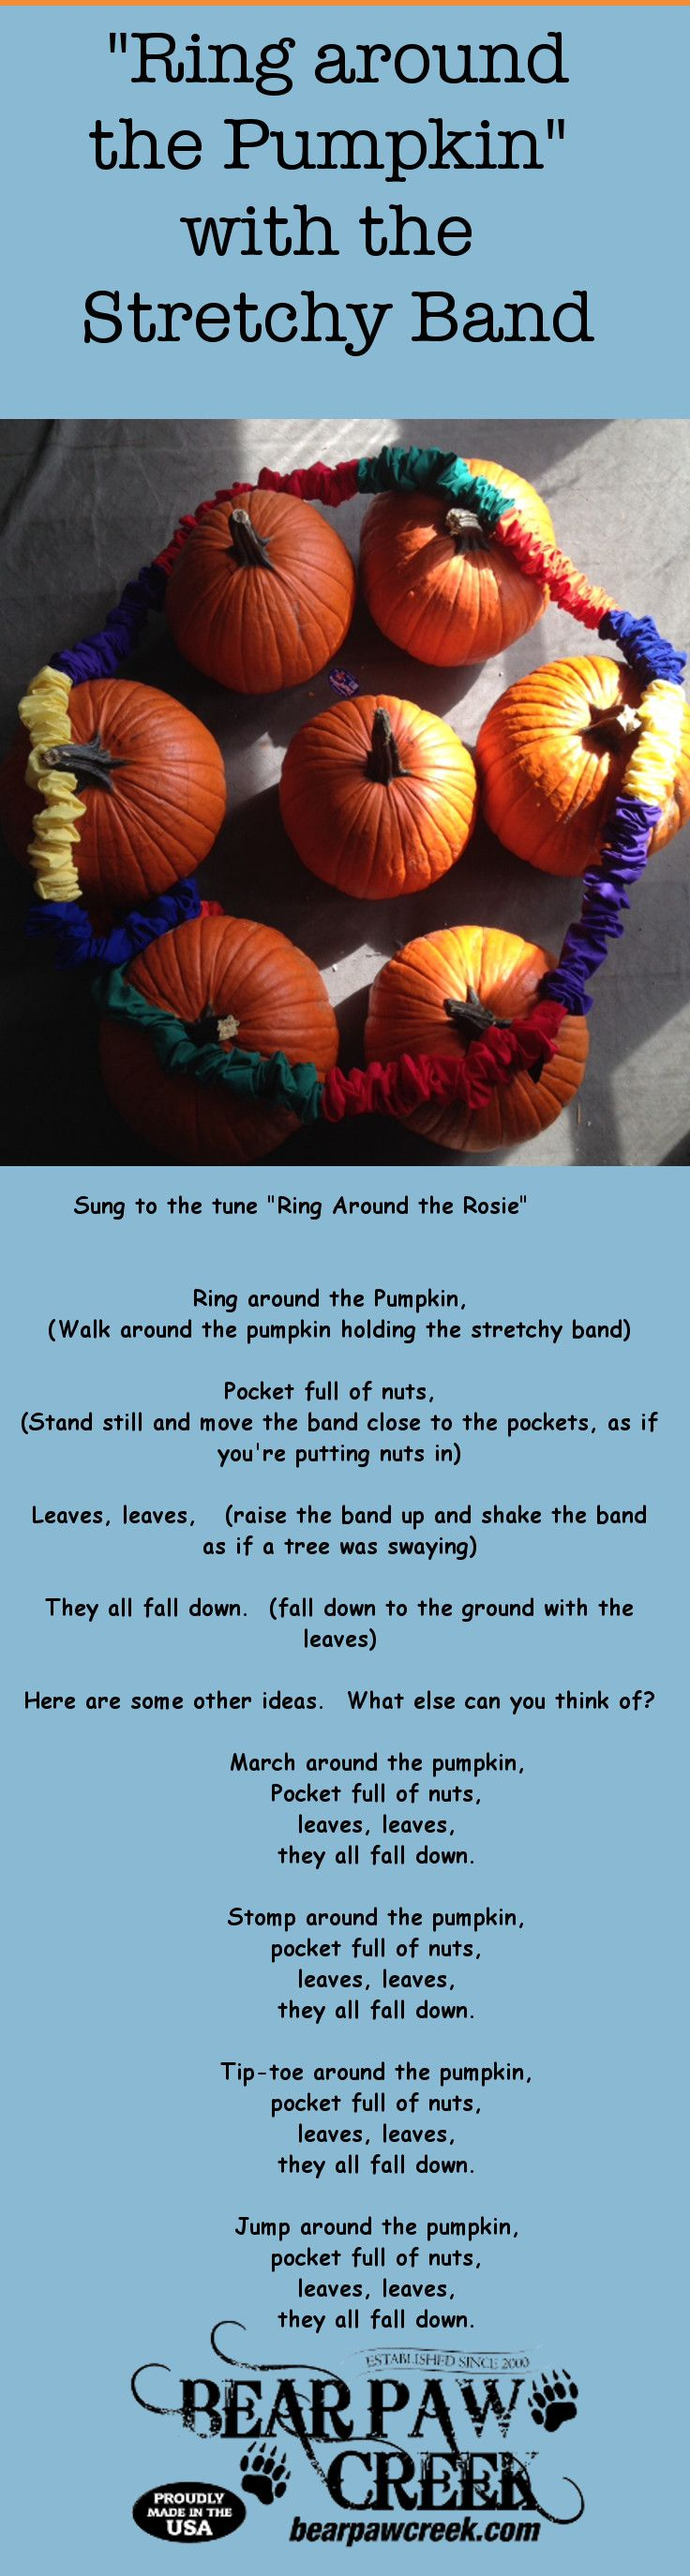 """Ring Around the Pumpkin"" song and movement activity with Bear Paw Creek's stretchy band or connect-a-band."